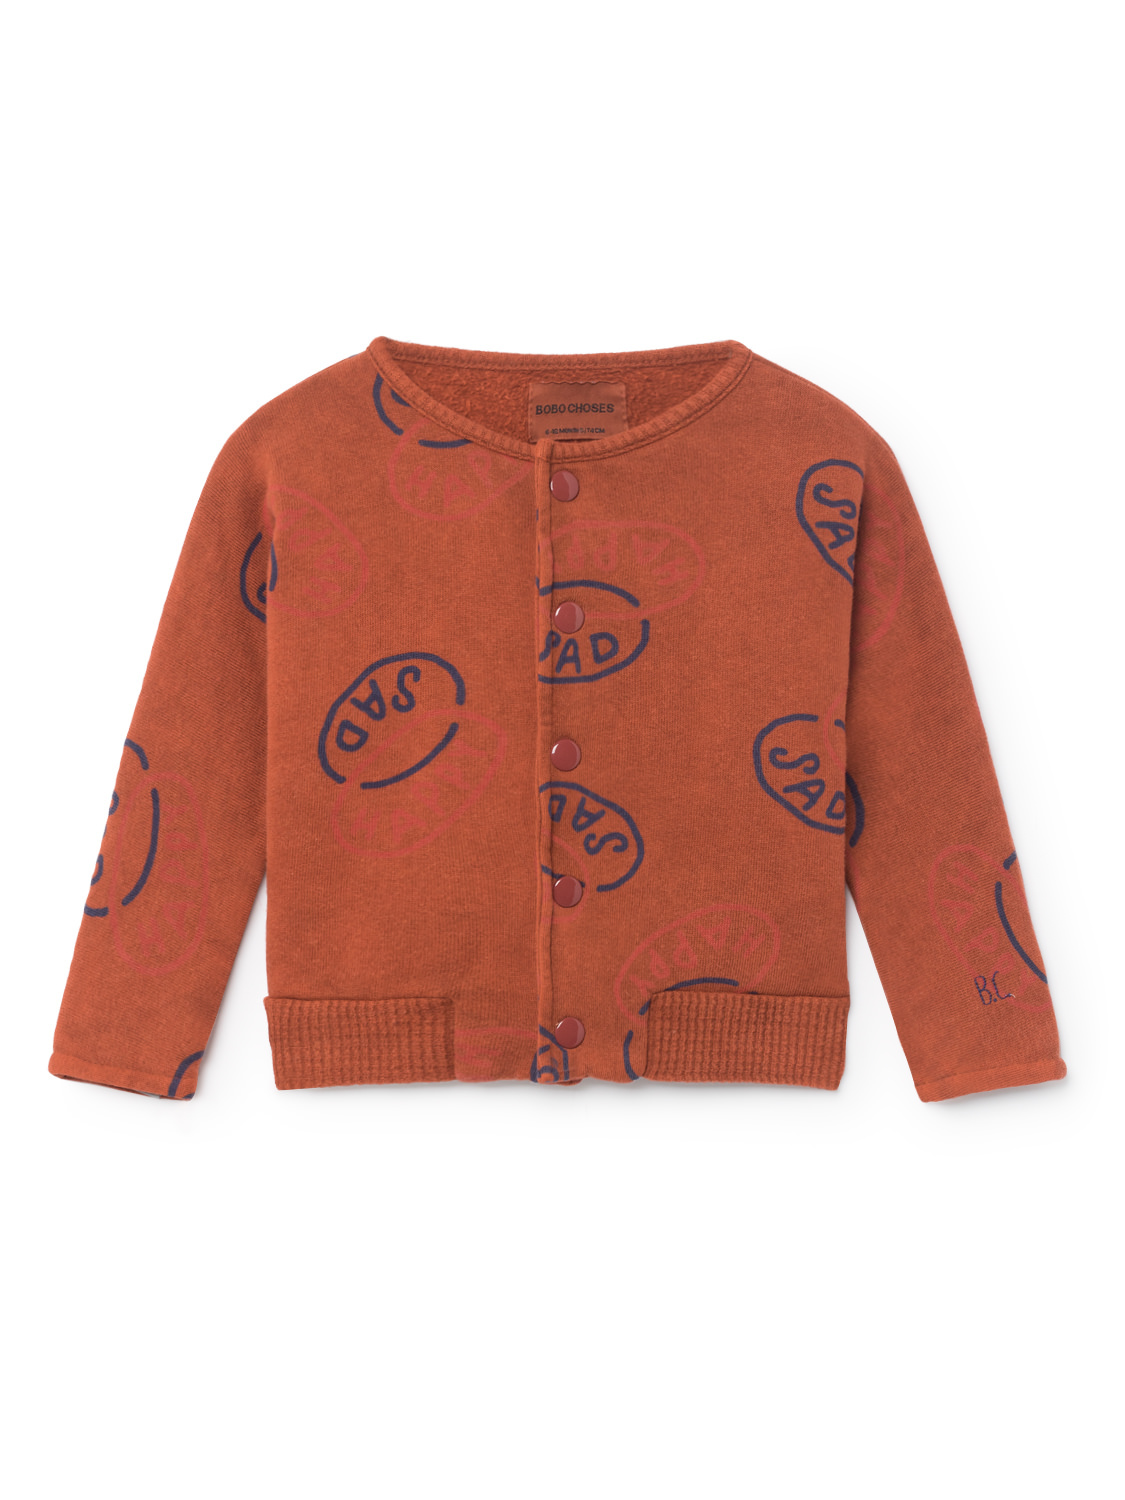 《BOBO CHOSES 2018AW》Happy Sad Buttons Sweatshirt / 12-36M